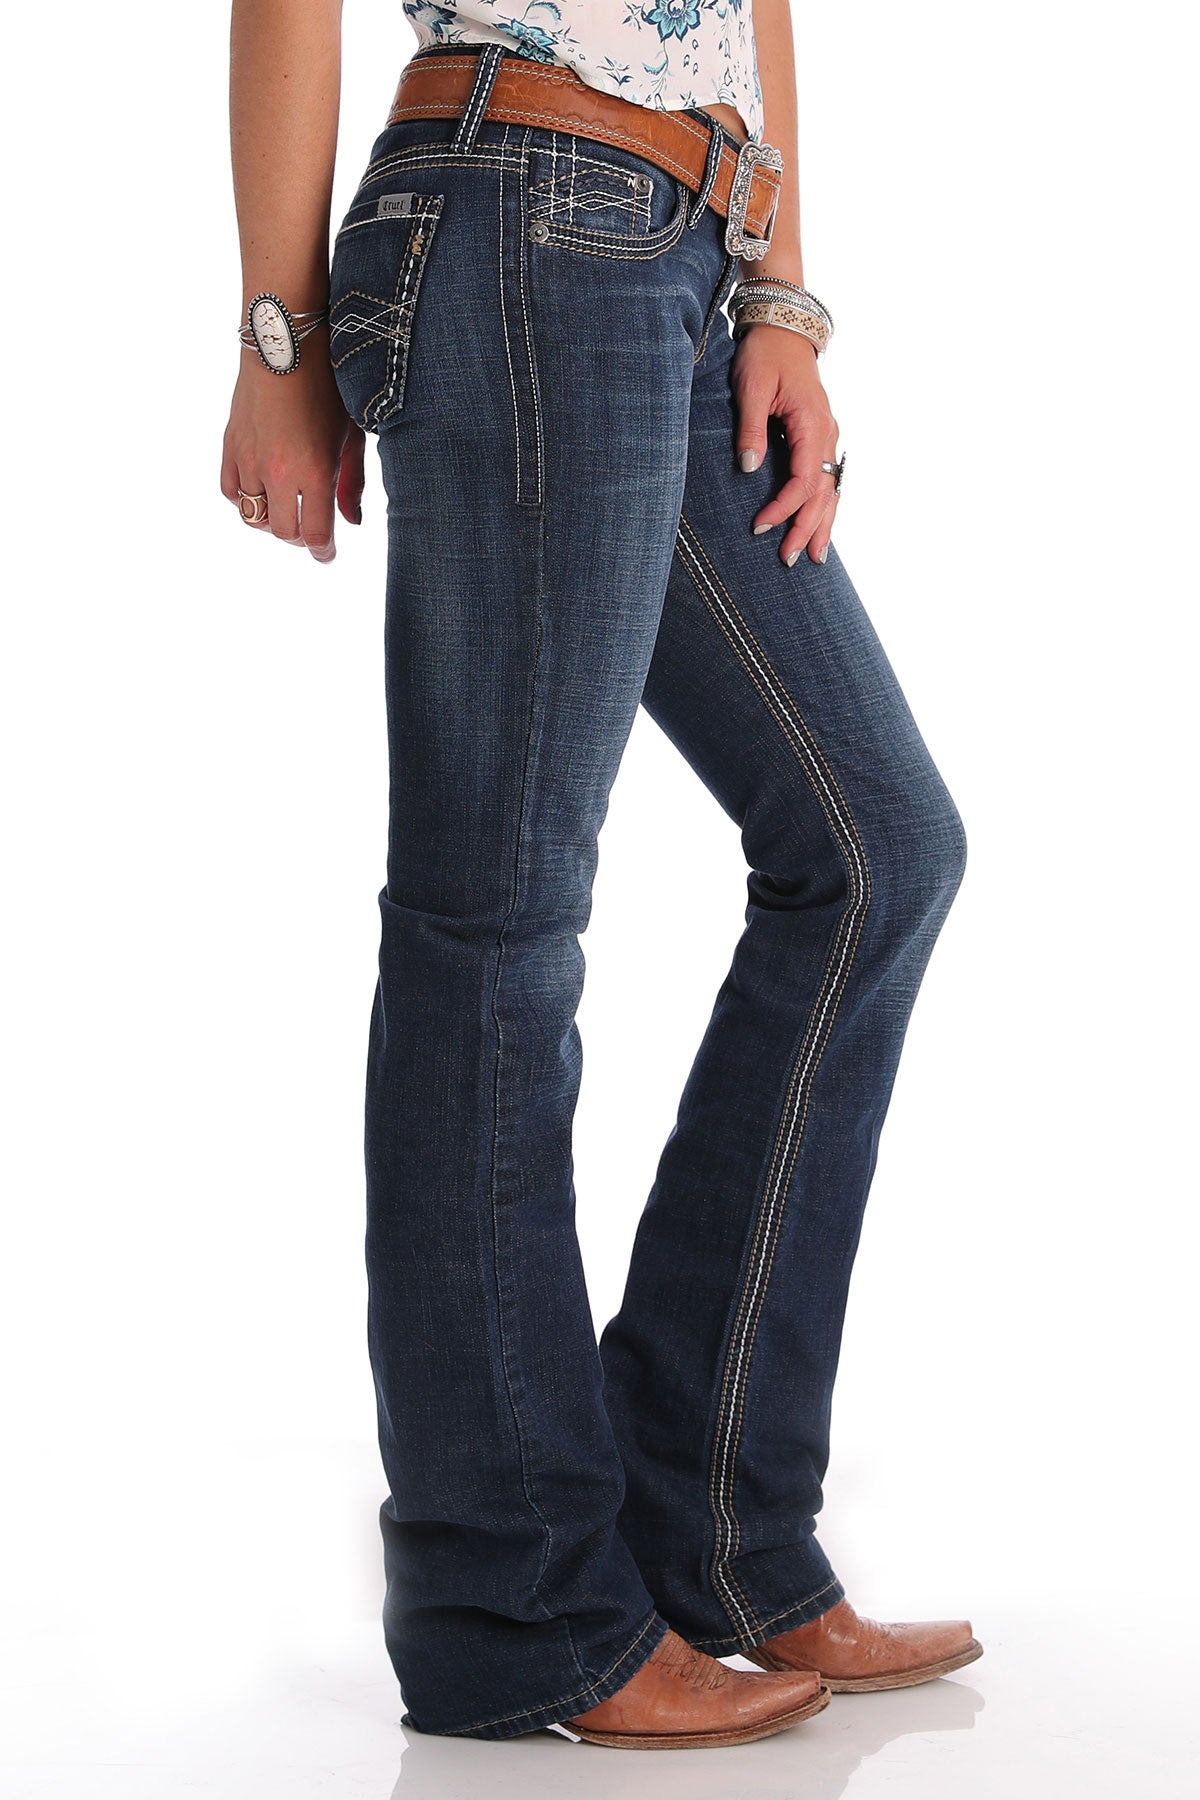 CRUEL GIRL Women's Abby Dark Stonewash Slim Fit Jean